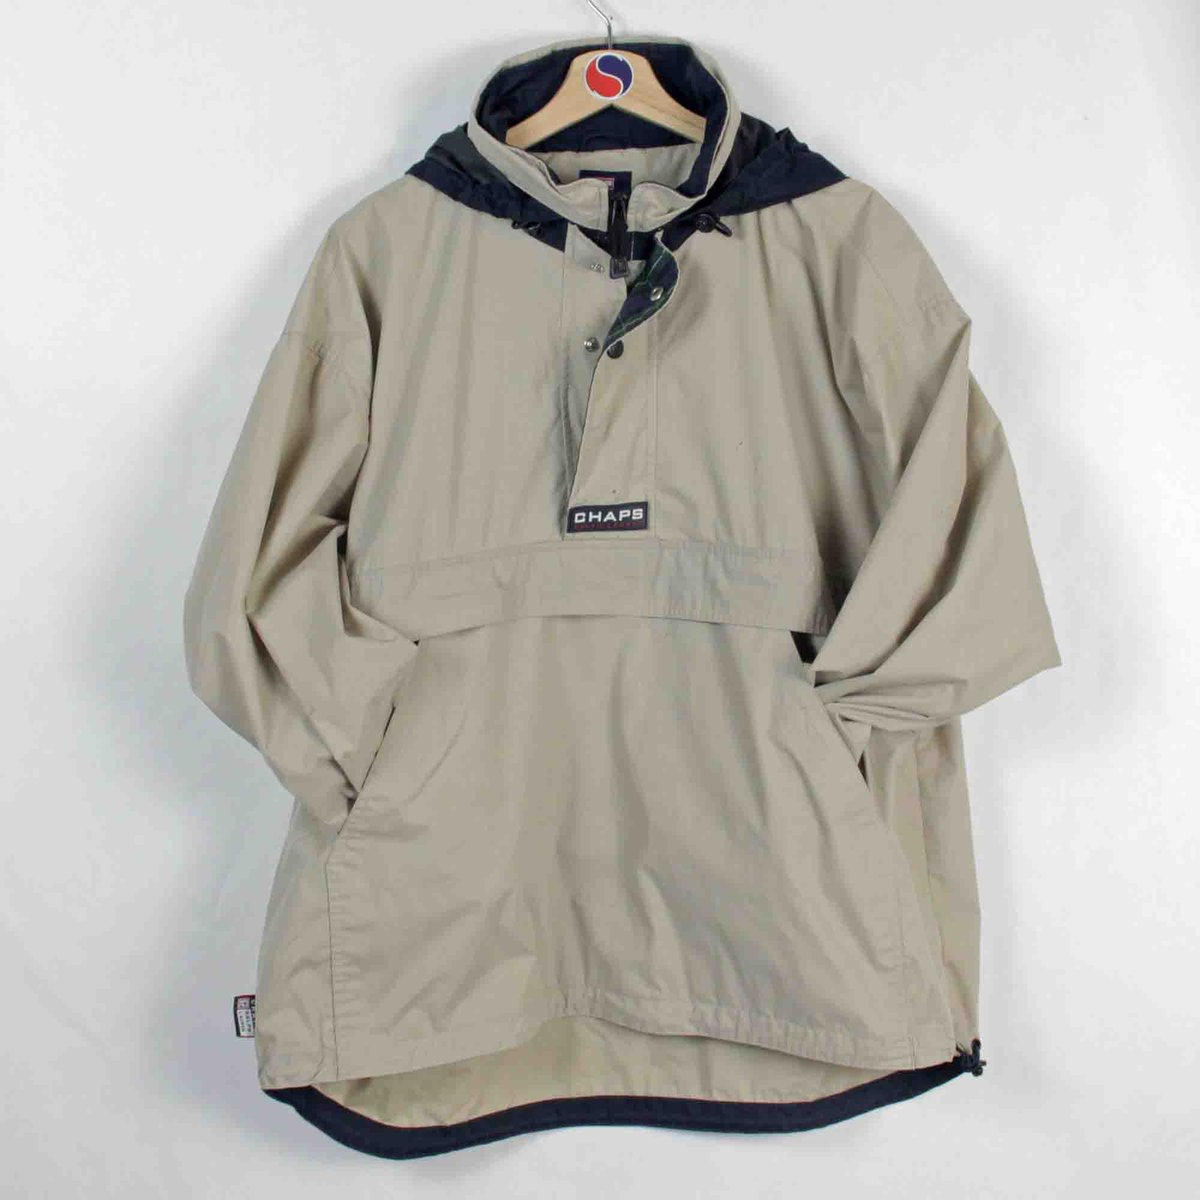 6cc1a261 $50 CAD Free Shipping: https://www.offsuitedvintage.com/product-page/chaps- ralph-lauren-pull-over-windbreaker-l … #ChapsRalphLauren #Fashion #Clothing  ...